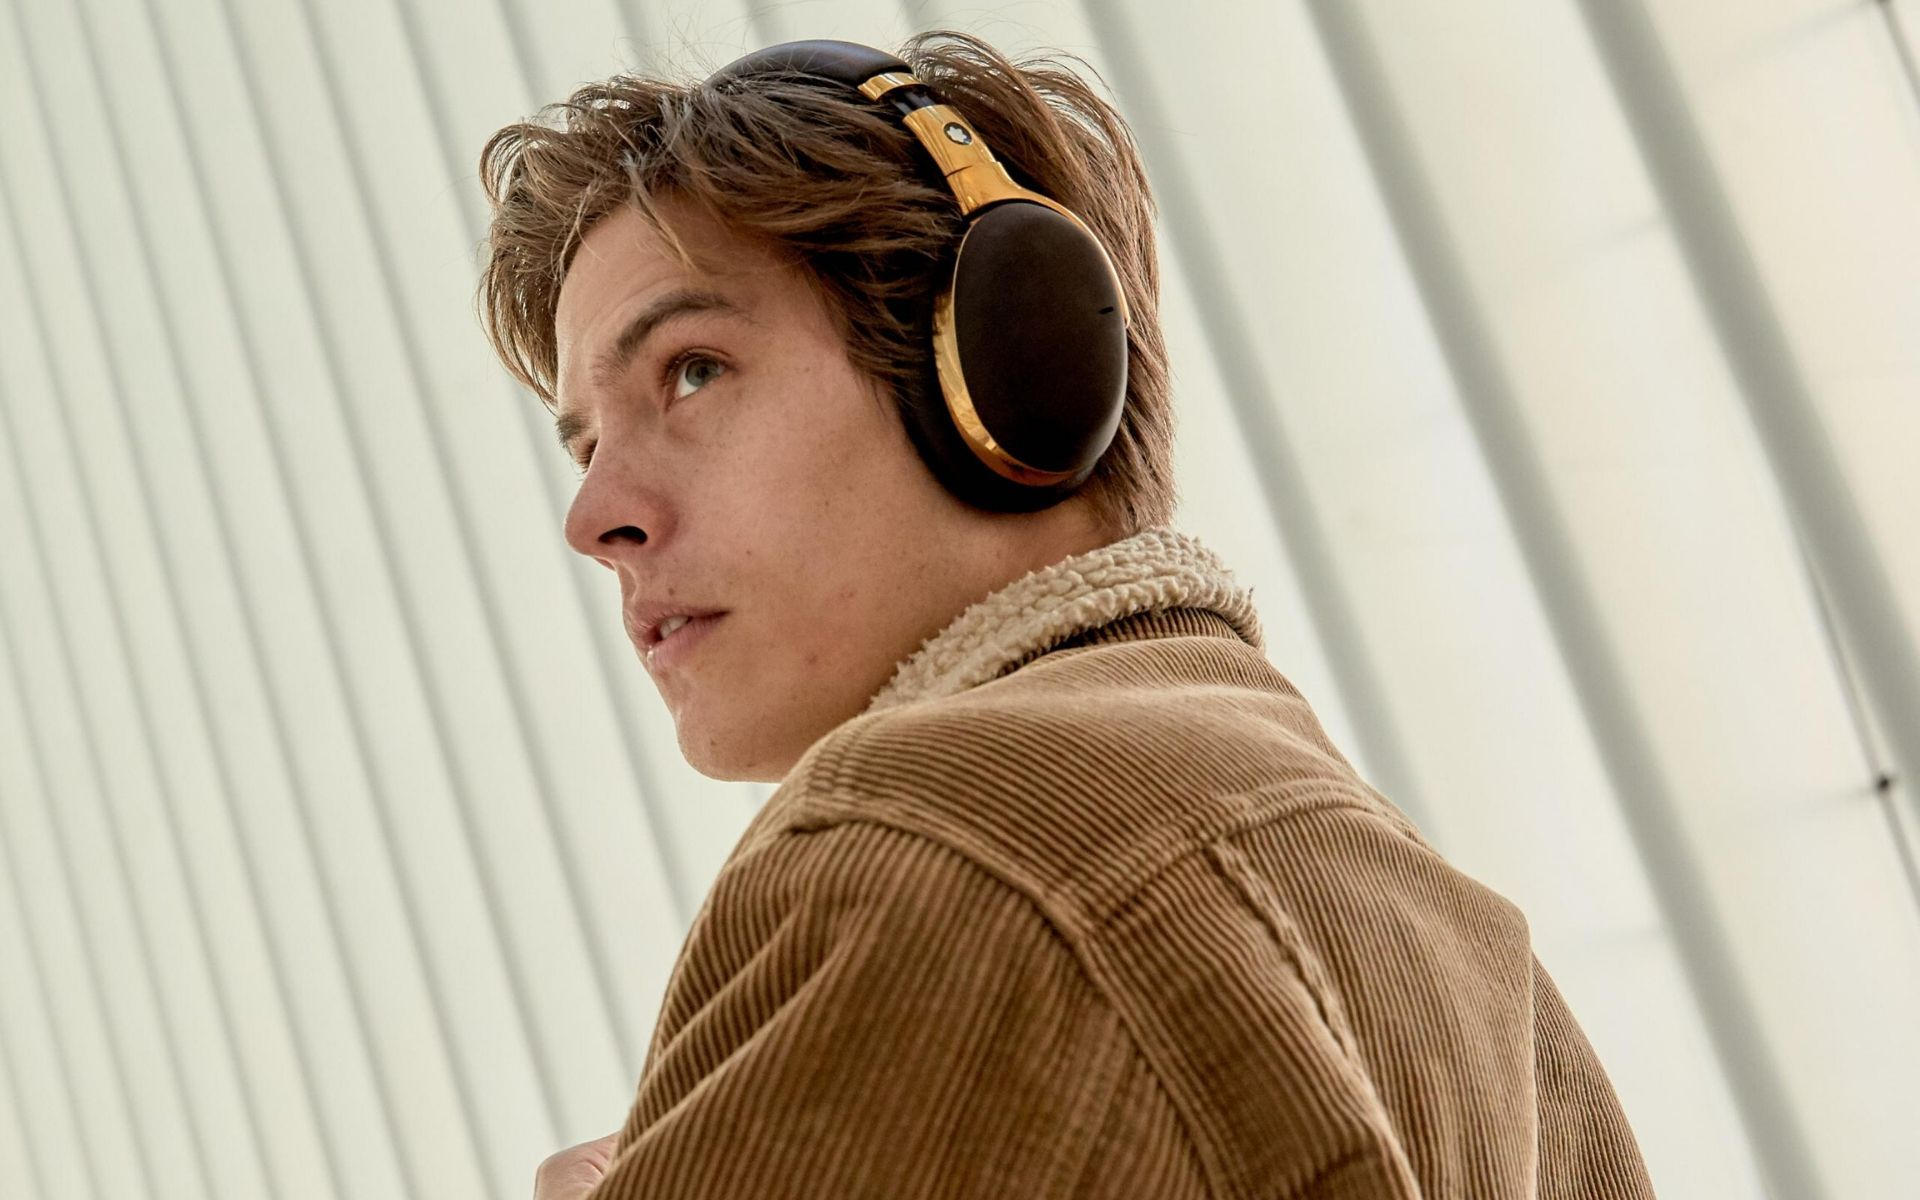 Montblanc Launches Its First Smart Headphones With Actor Dylan Sprouse